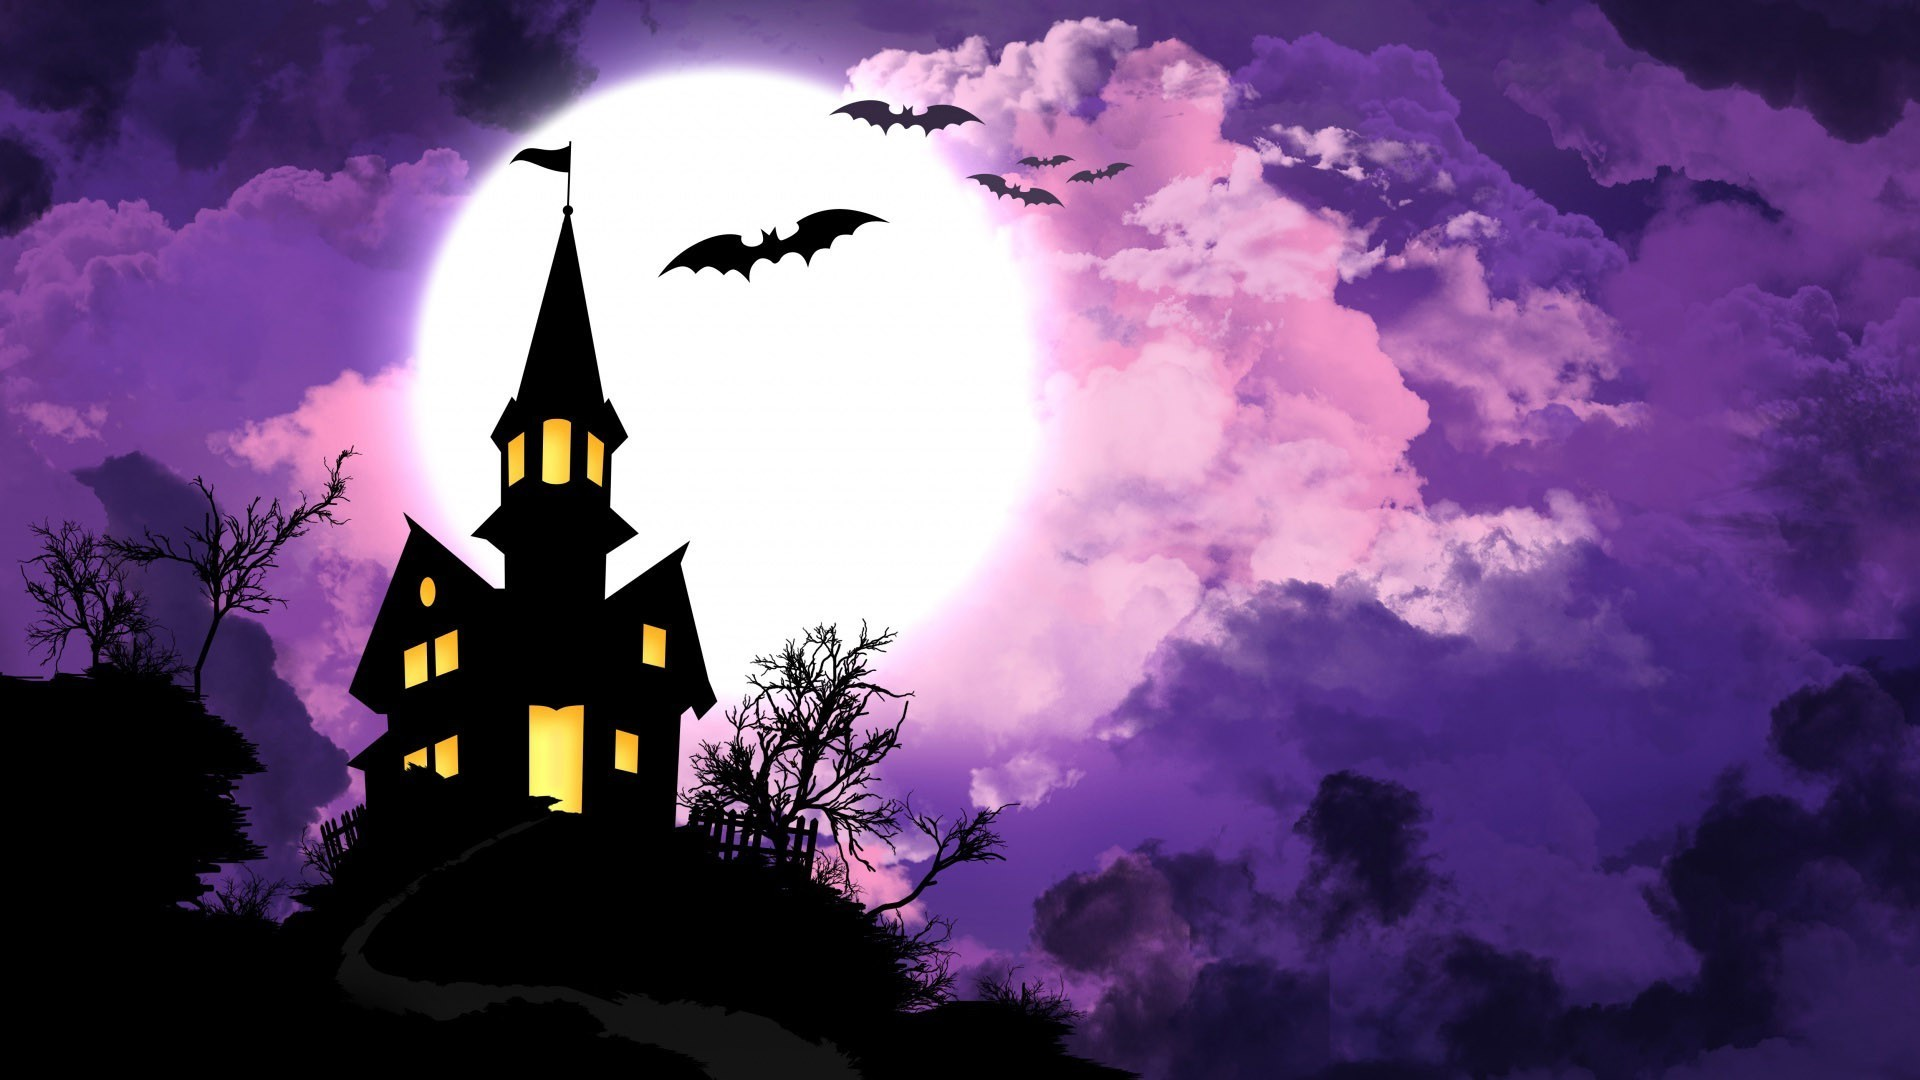 background hd halloween theme ; Pictures-images-halloween-backgrounds- wallpapers